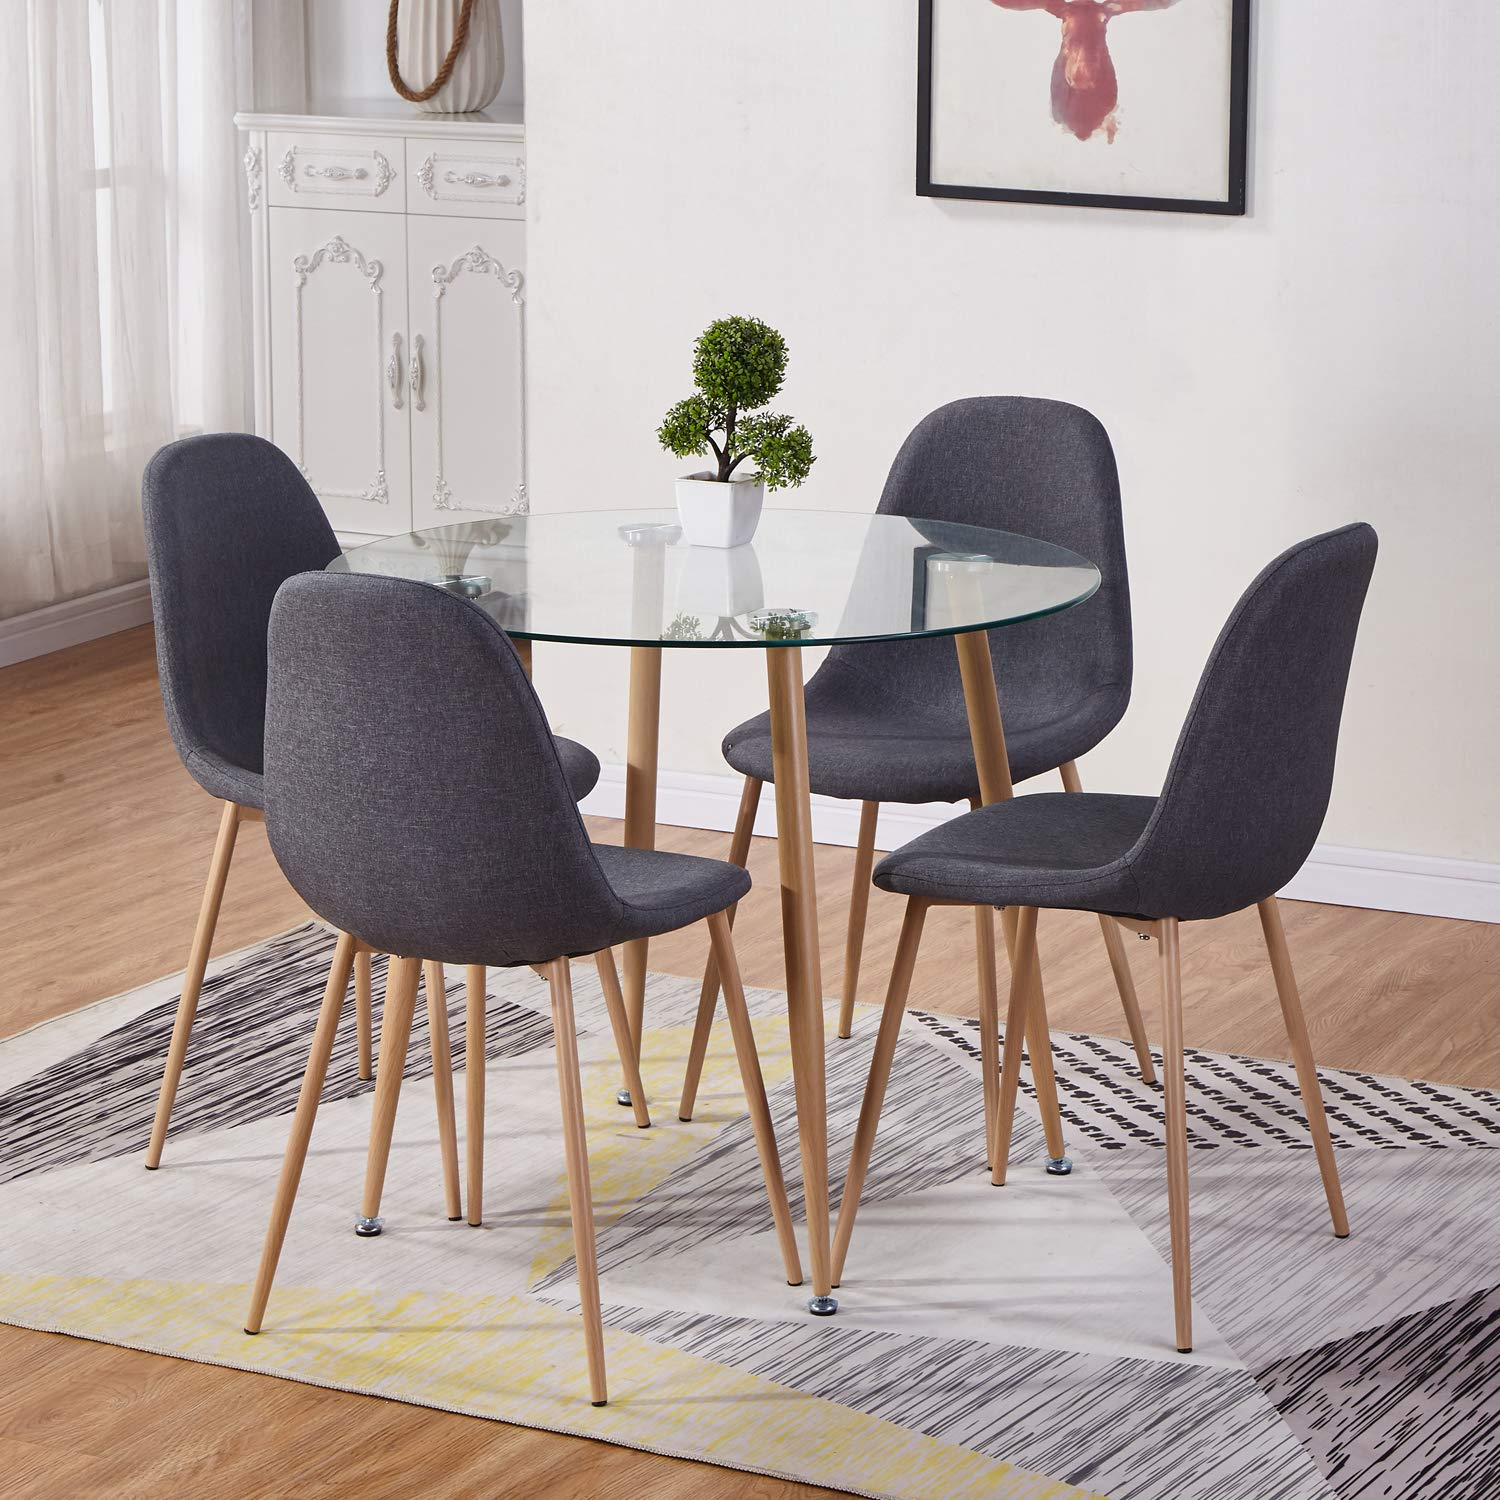 Goldfan Round Glass Dining Table And 4 Chairs Kitchen Dining Table And Grey Fabric Chairs With Metal Legs Dining Room Set Buy Online In Thailand At Thailand Desertcart Com Productid 164599221